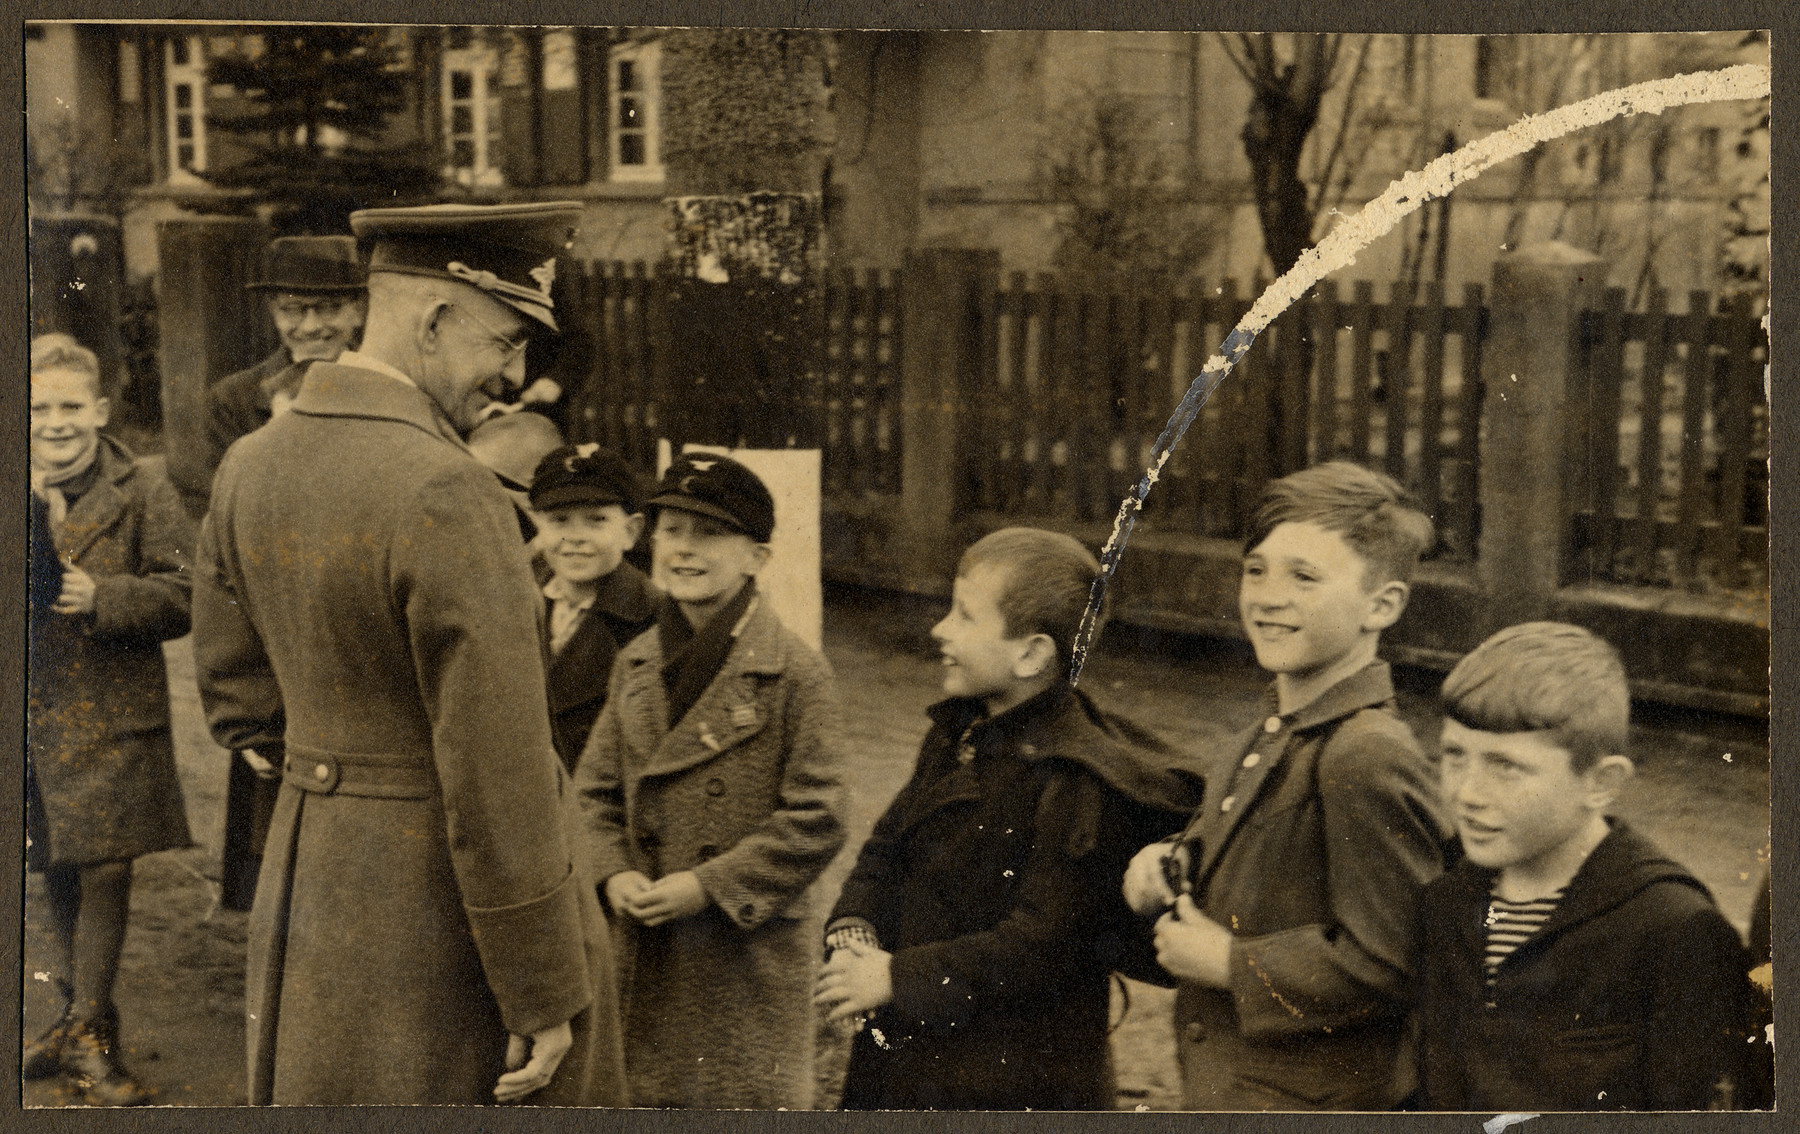 Alfred Meyer (1891-1945), Gauleiter Westfalen-Nord, and Rosenberg's state secretary for the Eastern occupied territories meets with a group of young boys during Rosenberg's visit to Muenster.